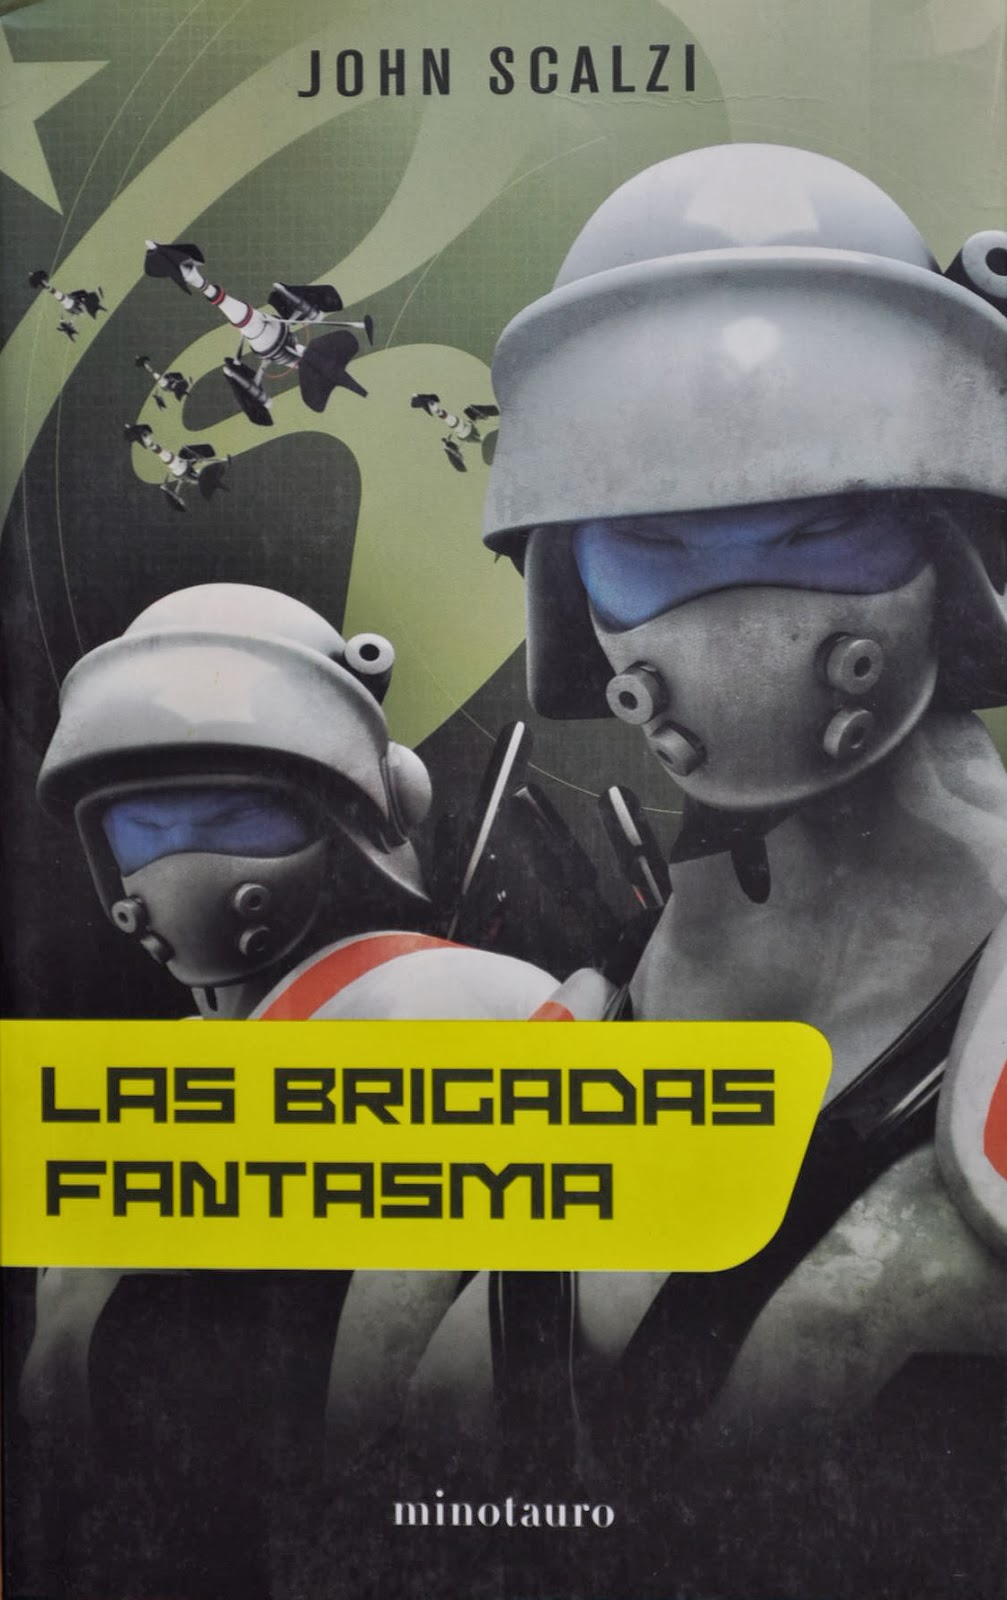 Las Brigadas Fantasma